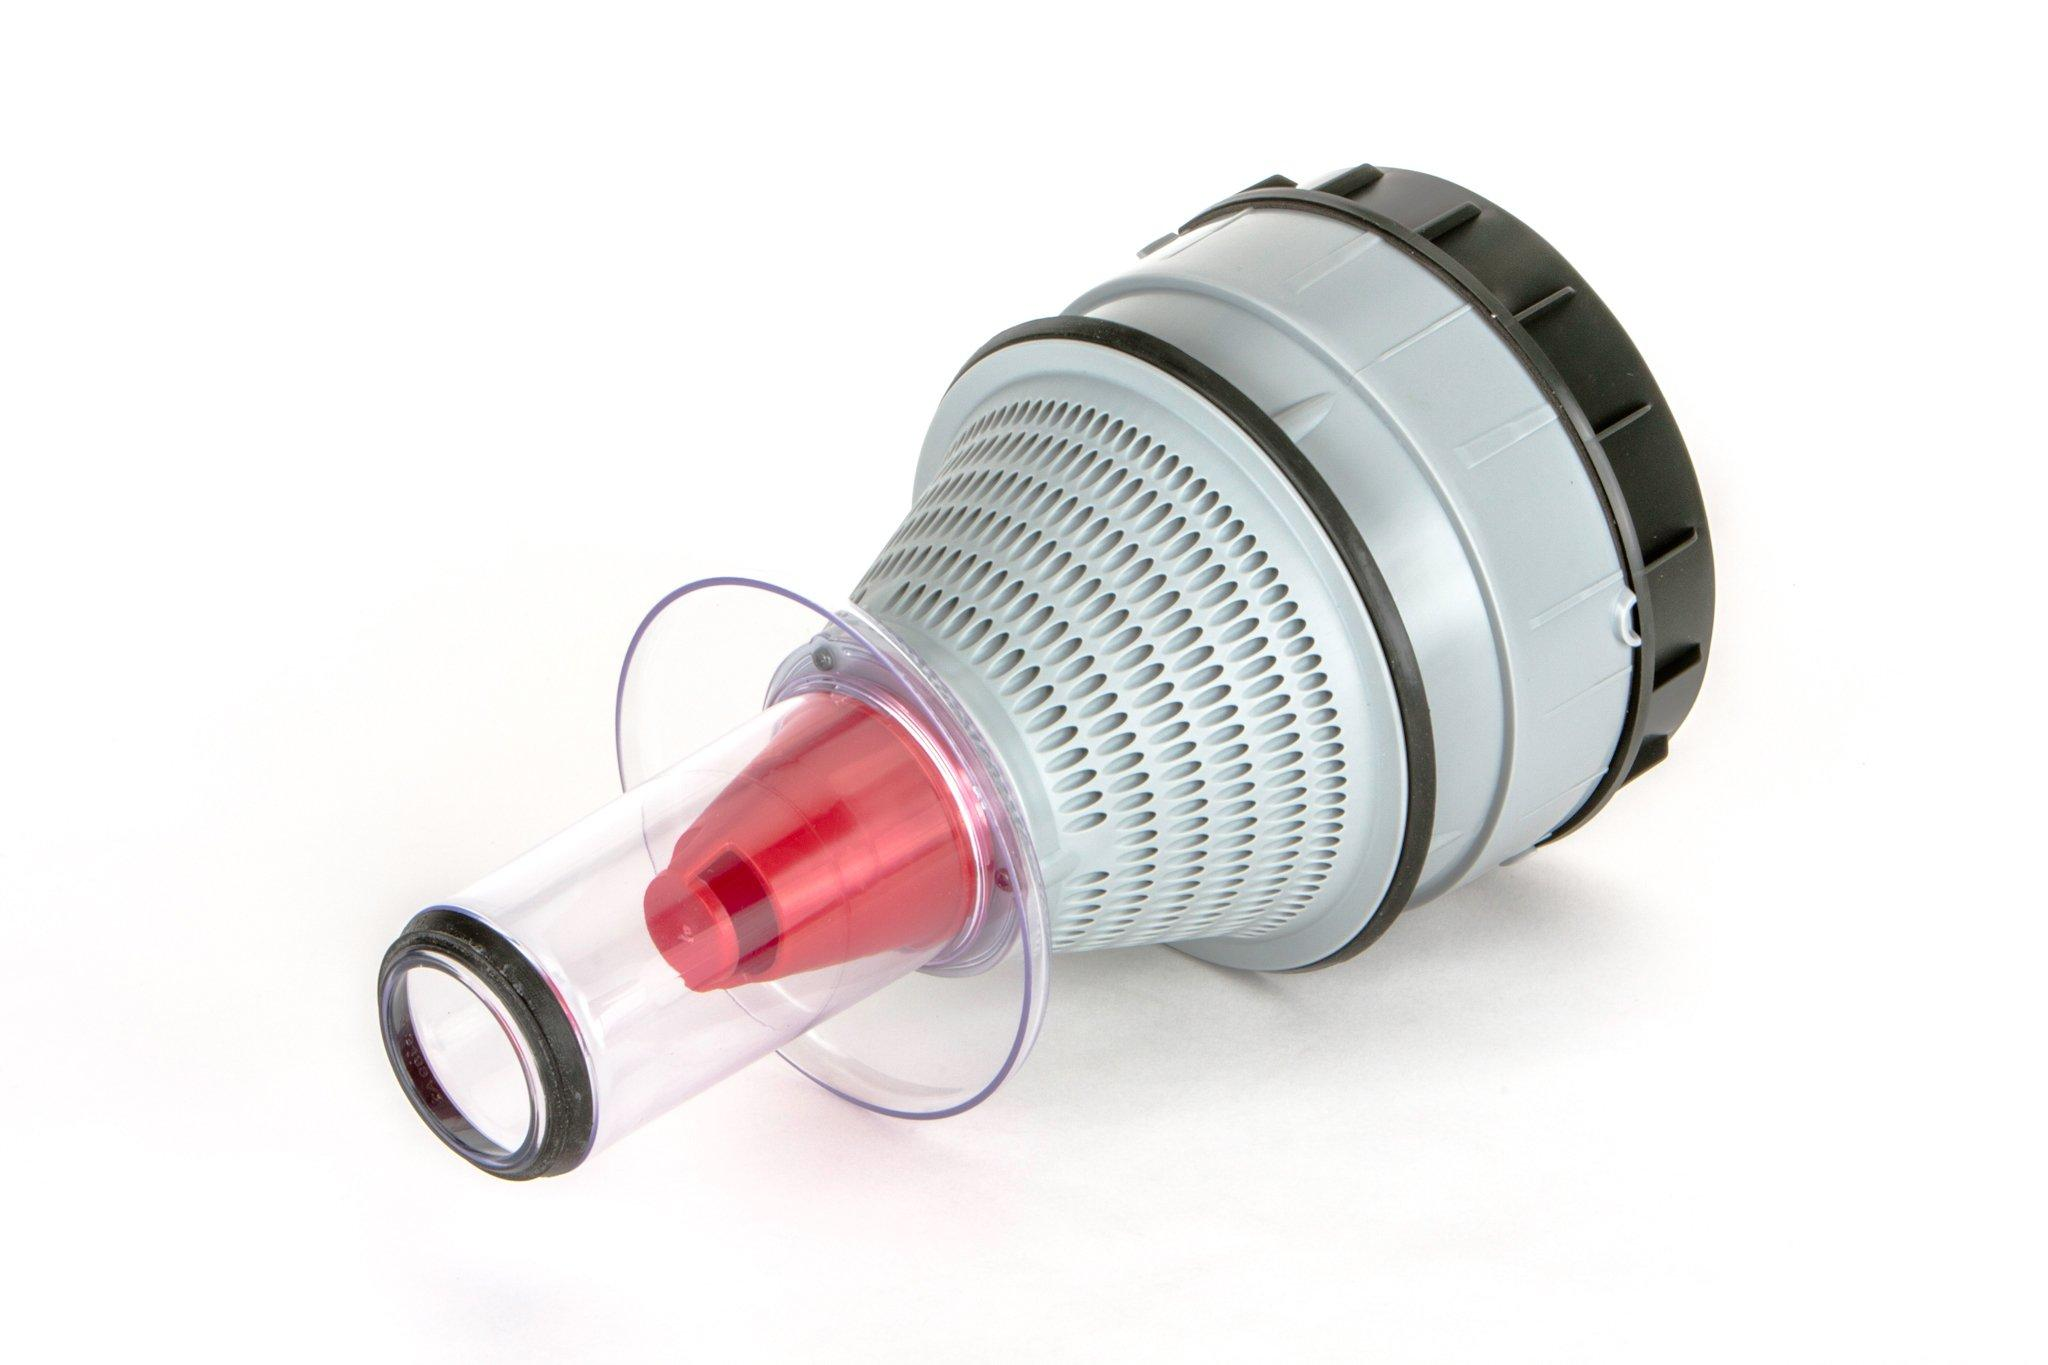 Upright Vacuum Dirt Cup- Cyclonic Filter